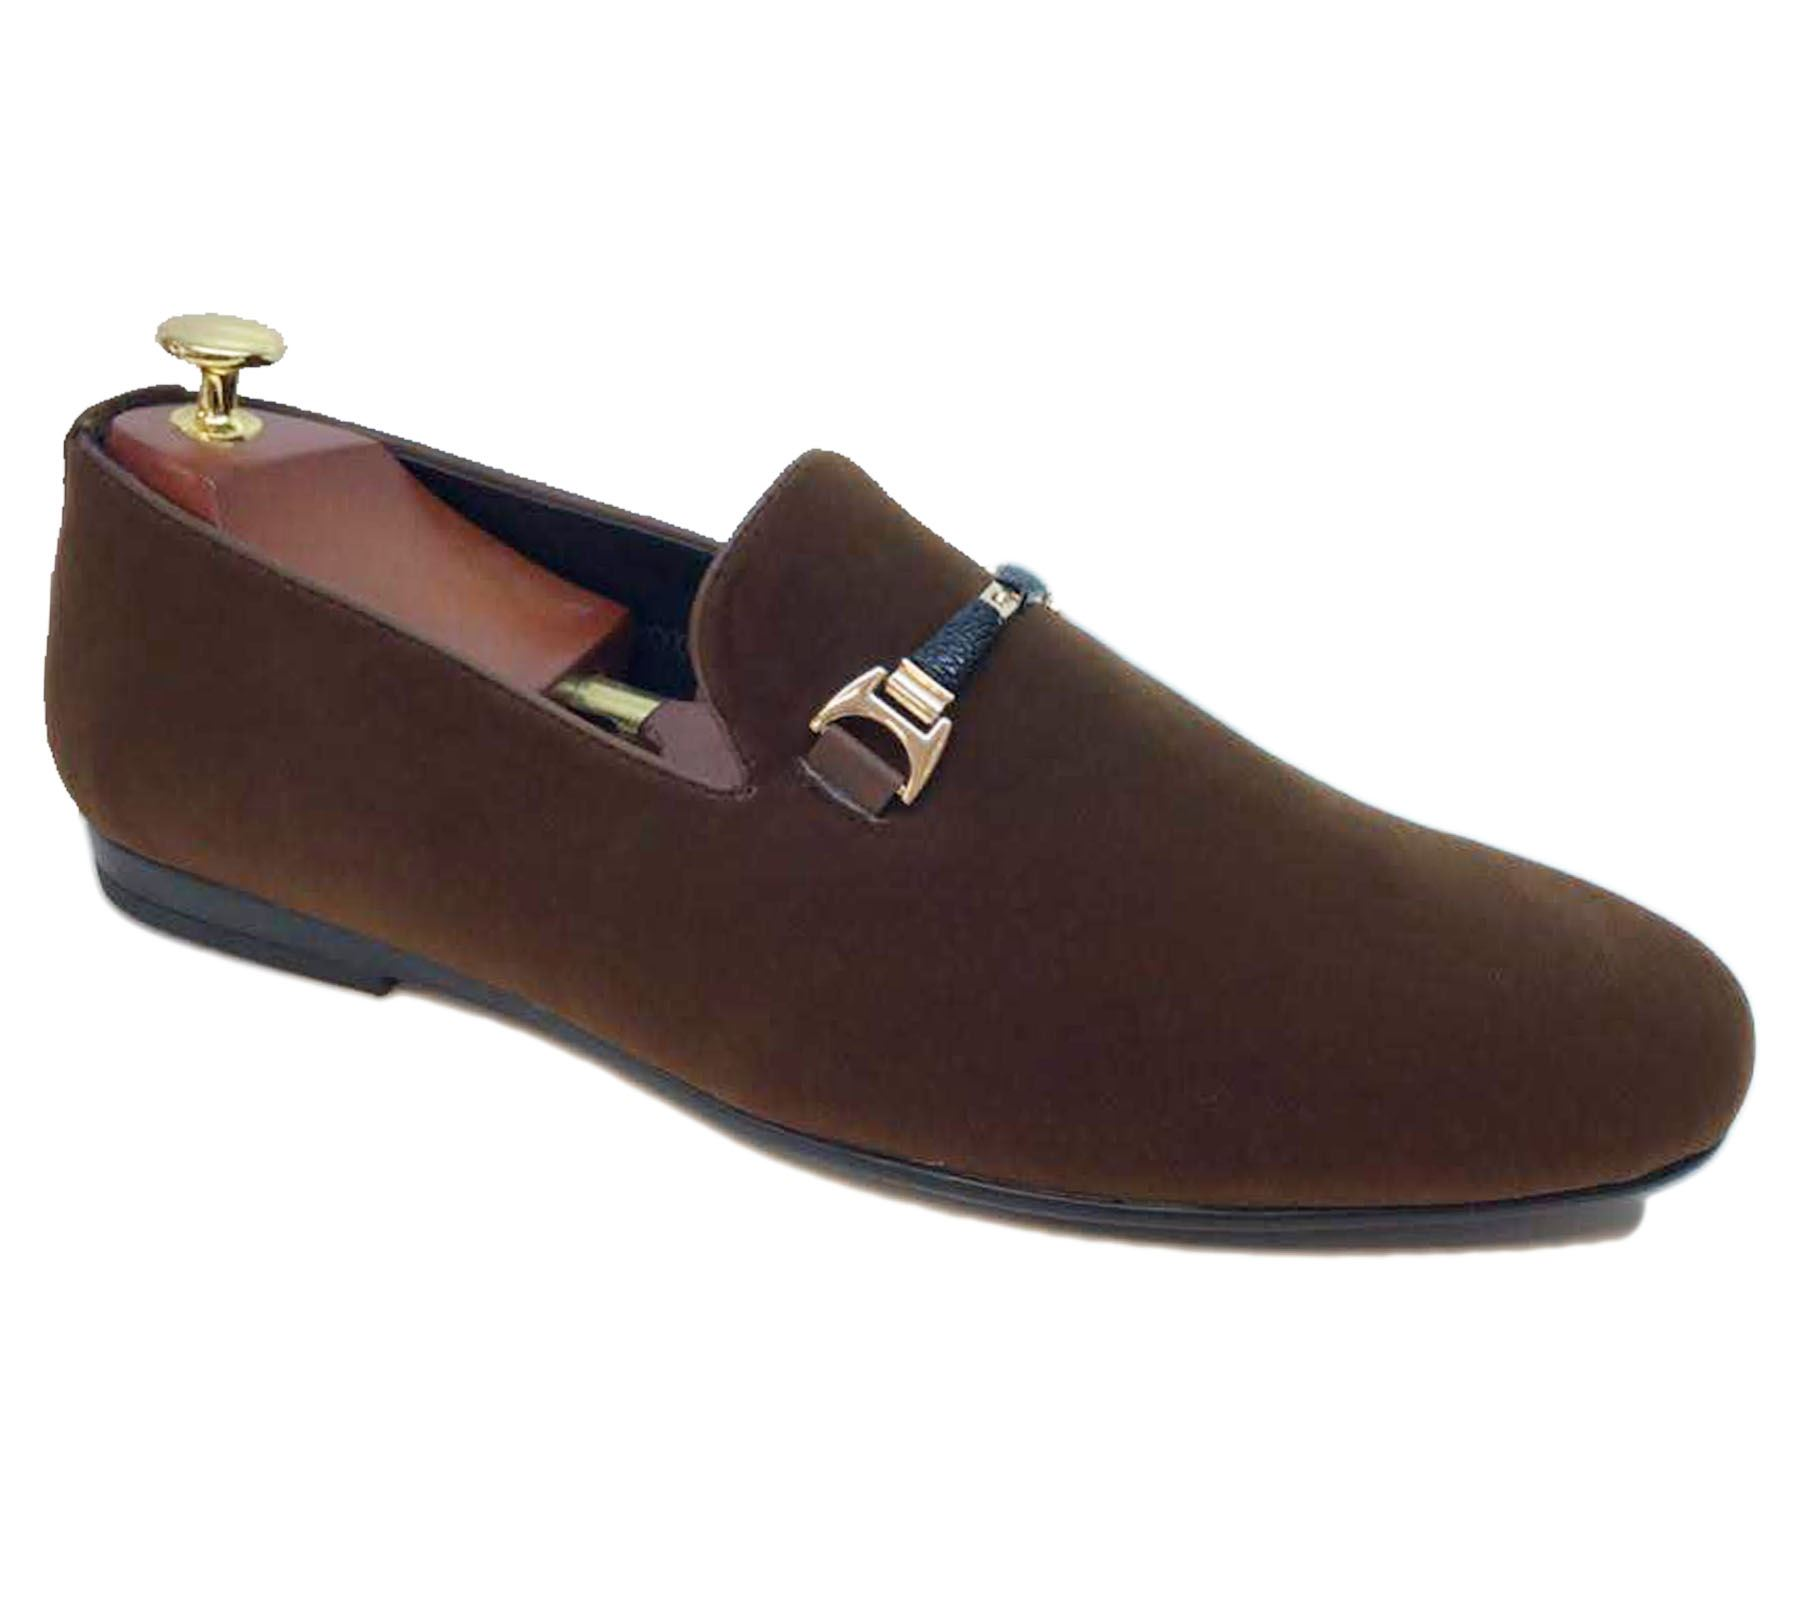 Mens-Loafers-Mocassin-Boat-Deck-Shoes-Flat-Slip-On-Driving-Casual-Smart-Pumps thumbnail 10